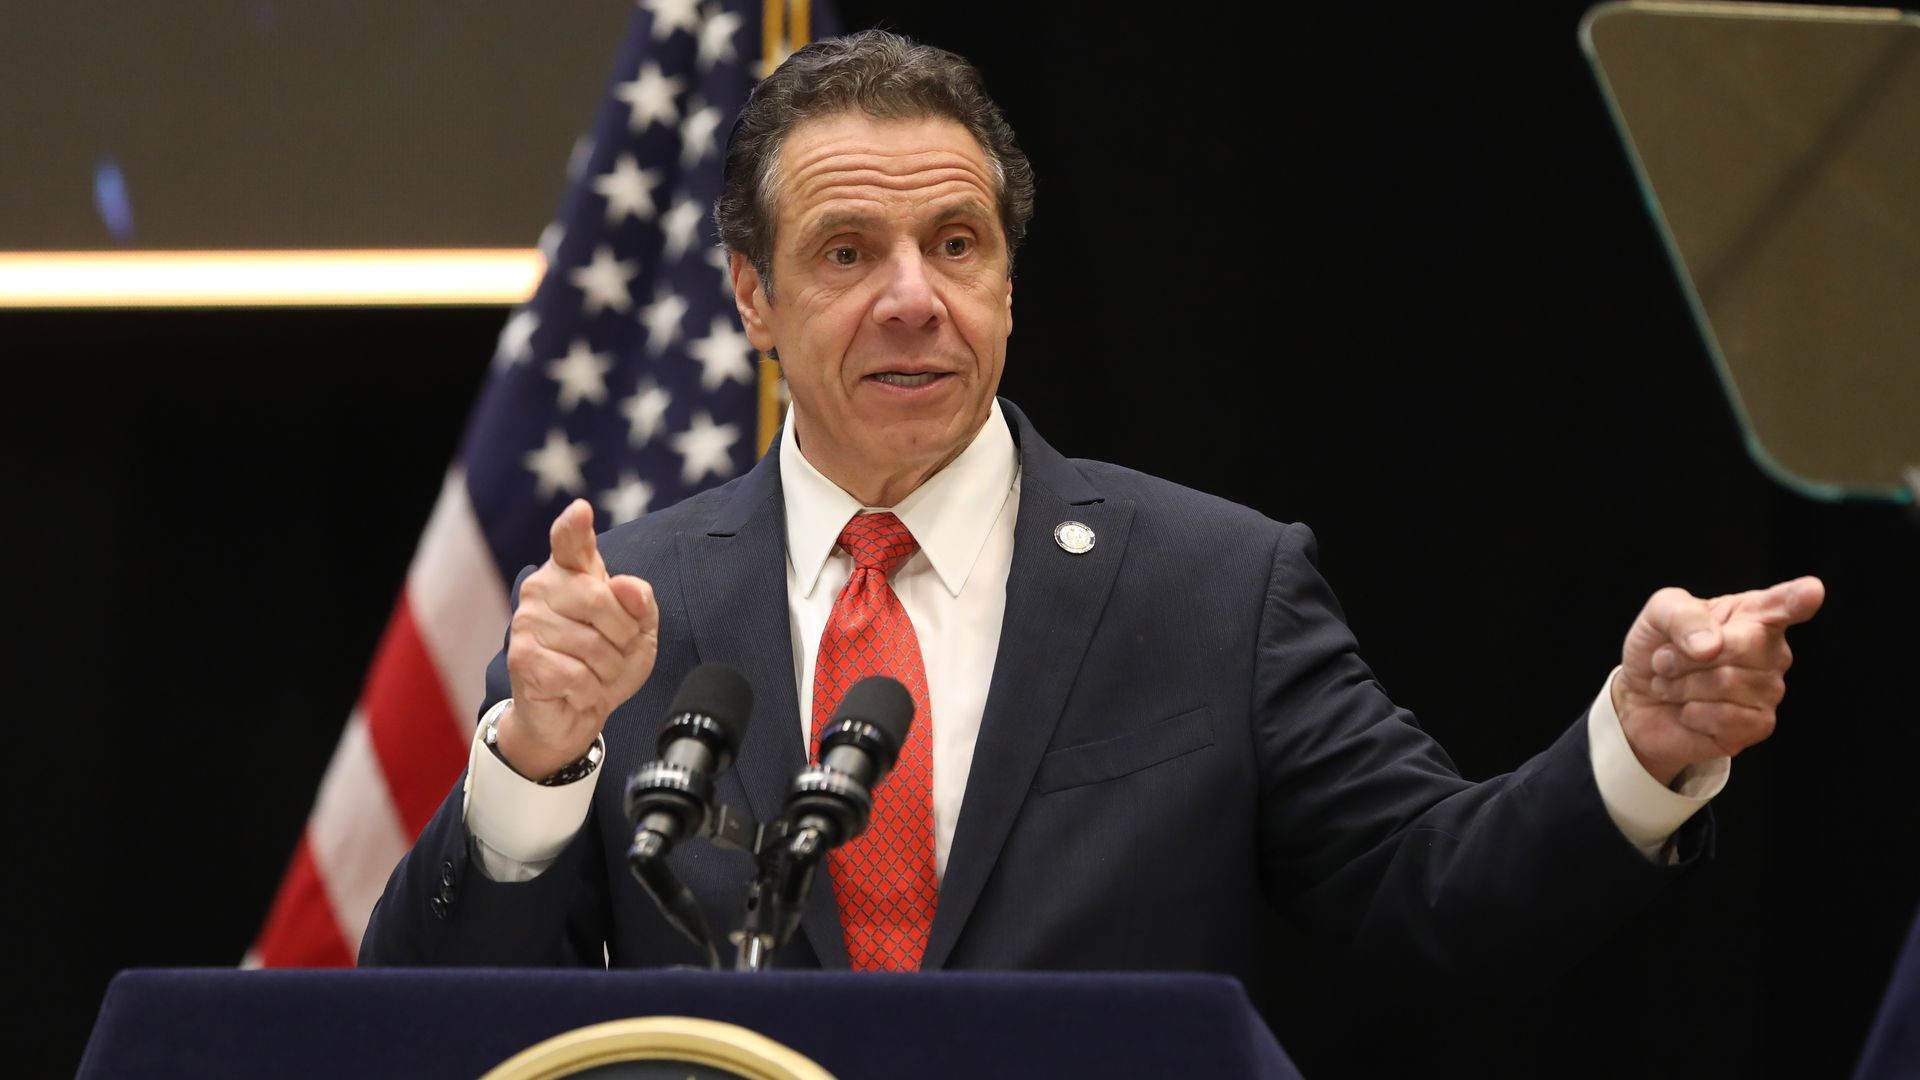 New York plans to eliminate 85% of its overall emissions by 2050 under proposed law